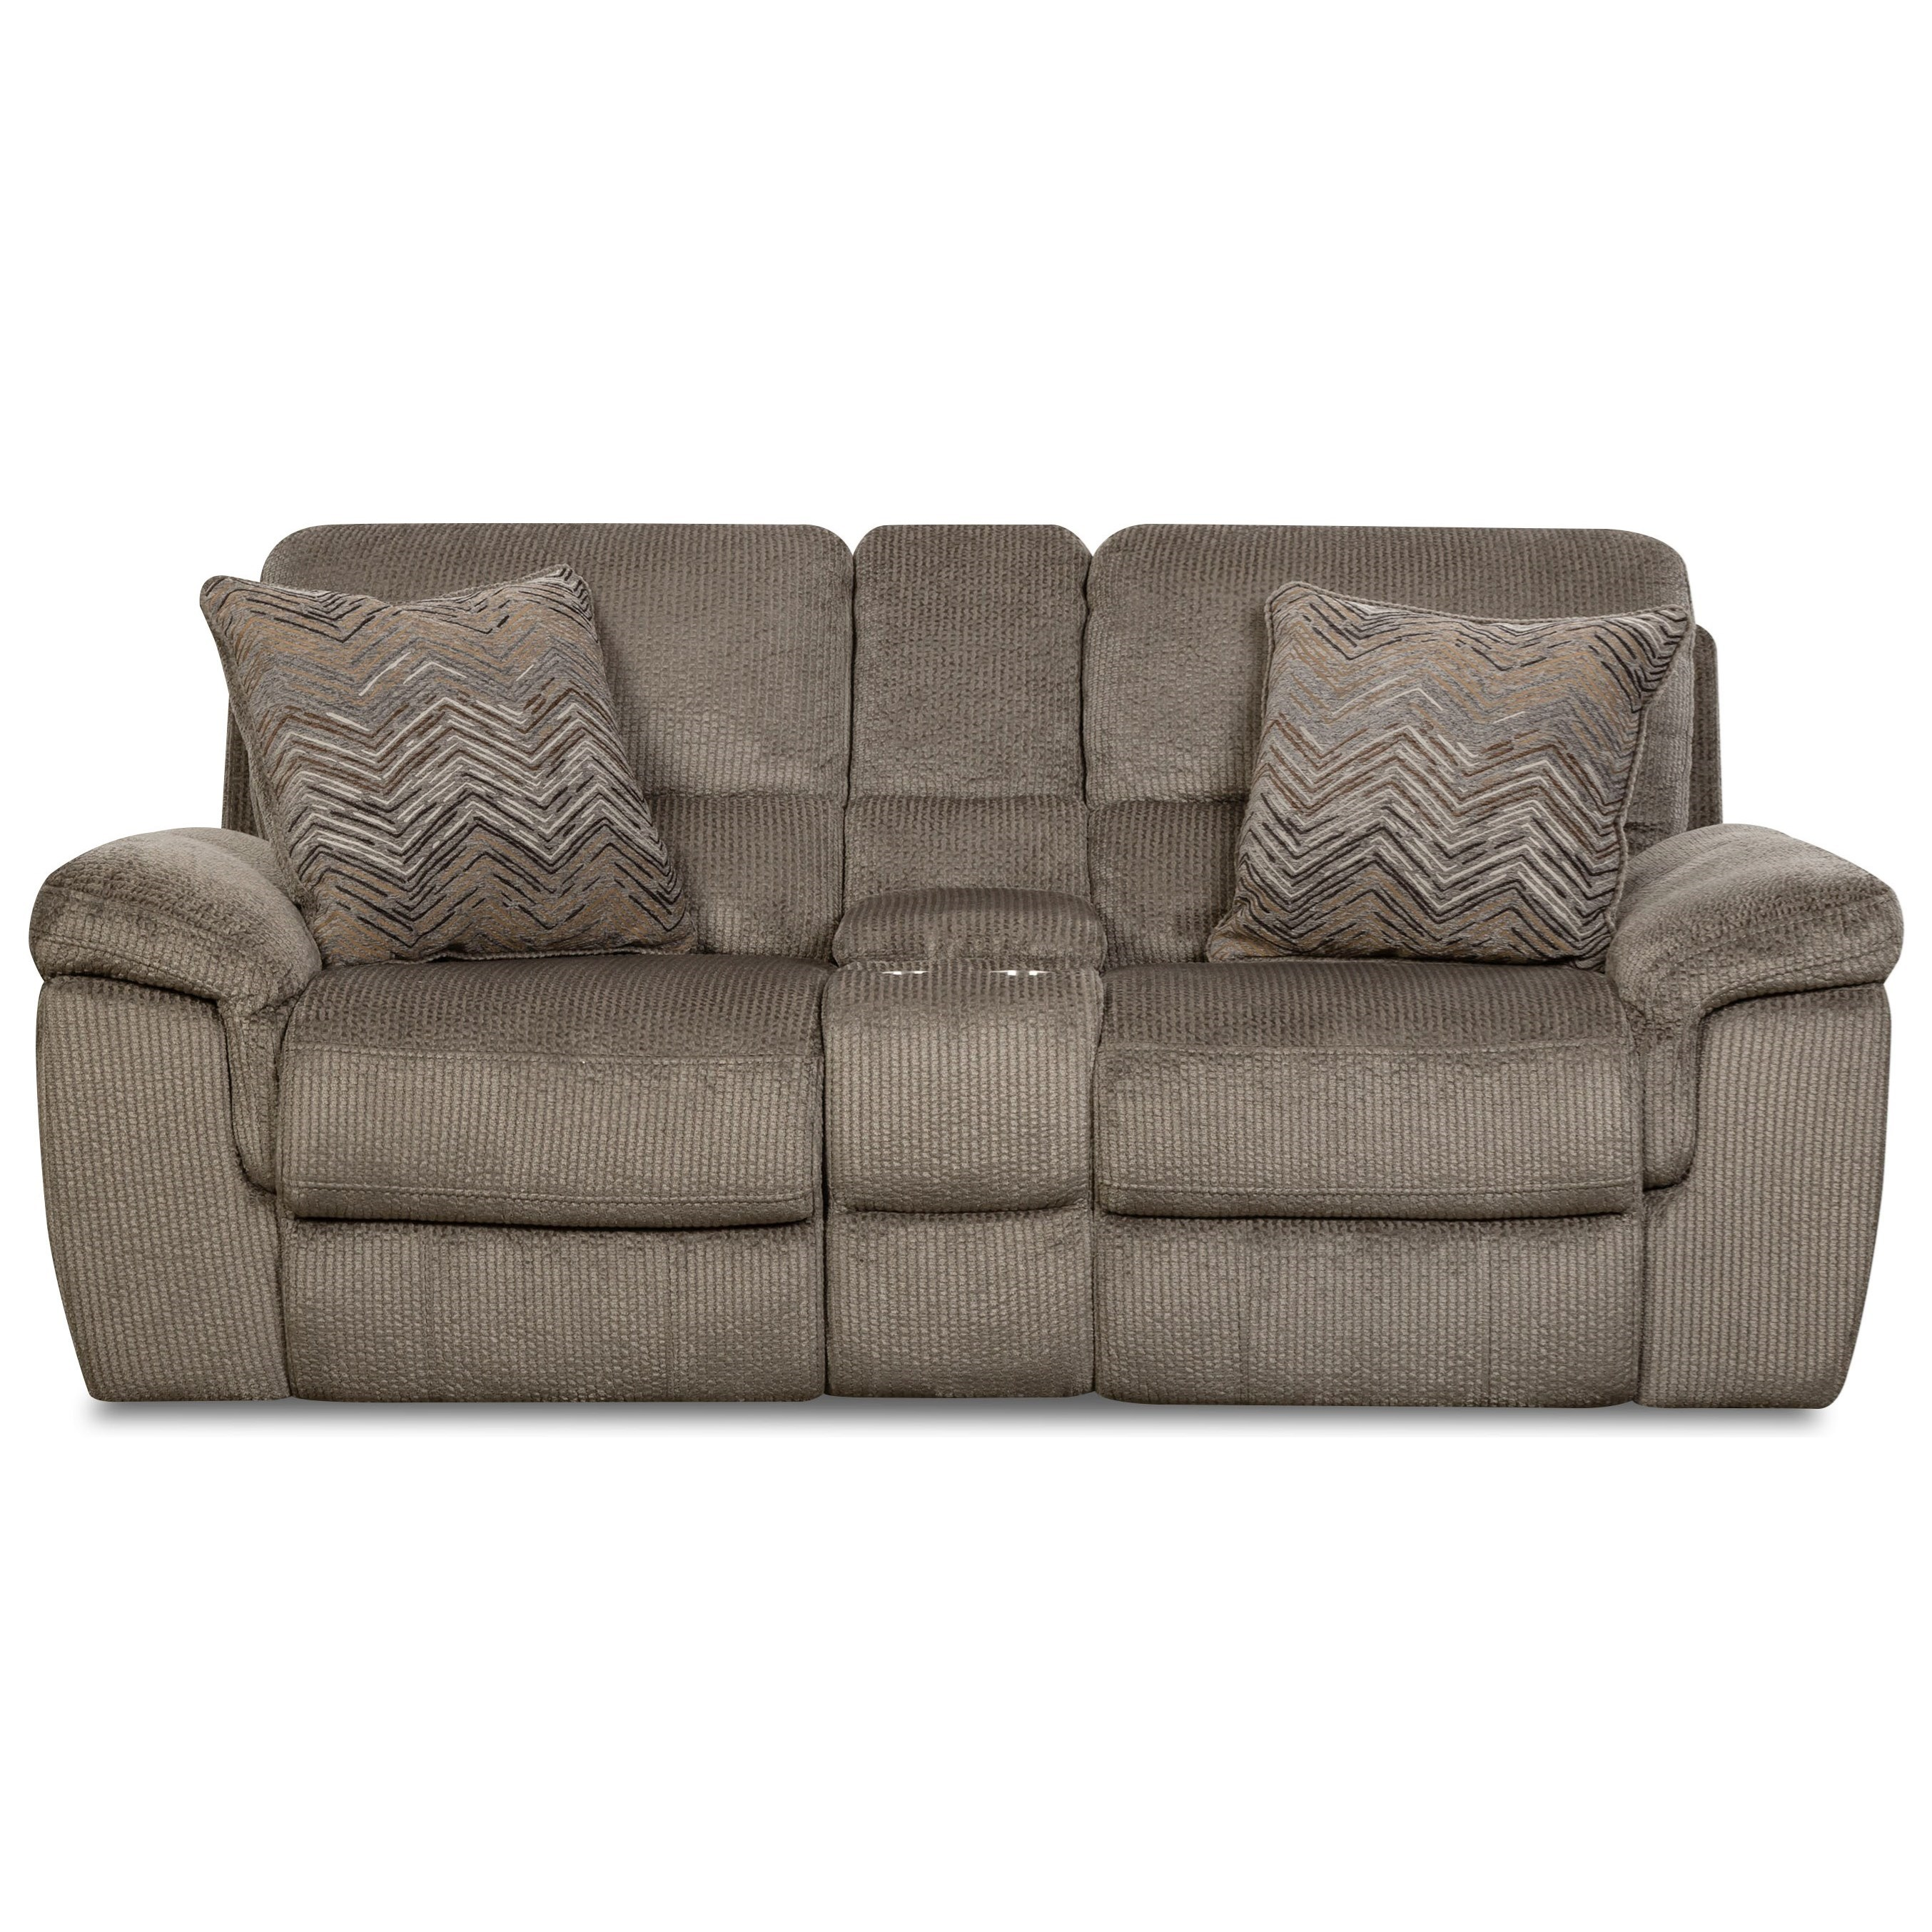 35001 Power Console Loveseat by Corinthian at Story & Lee Furniture